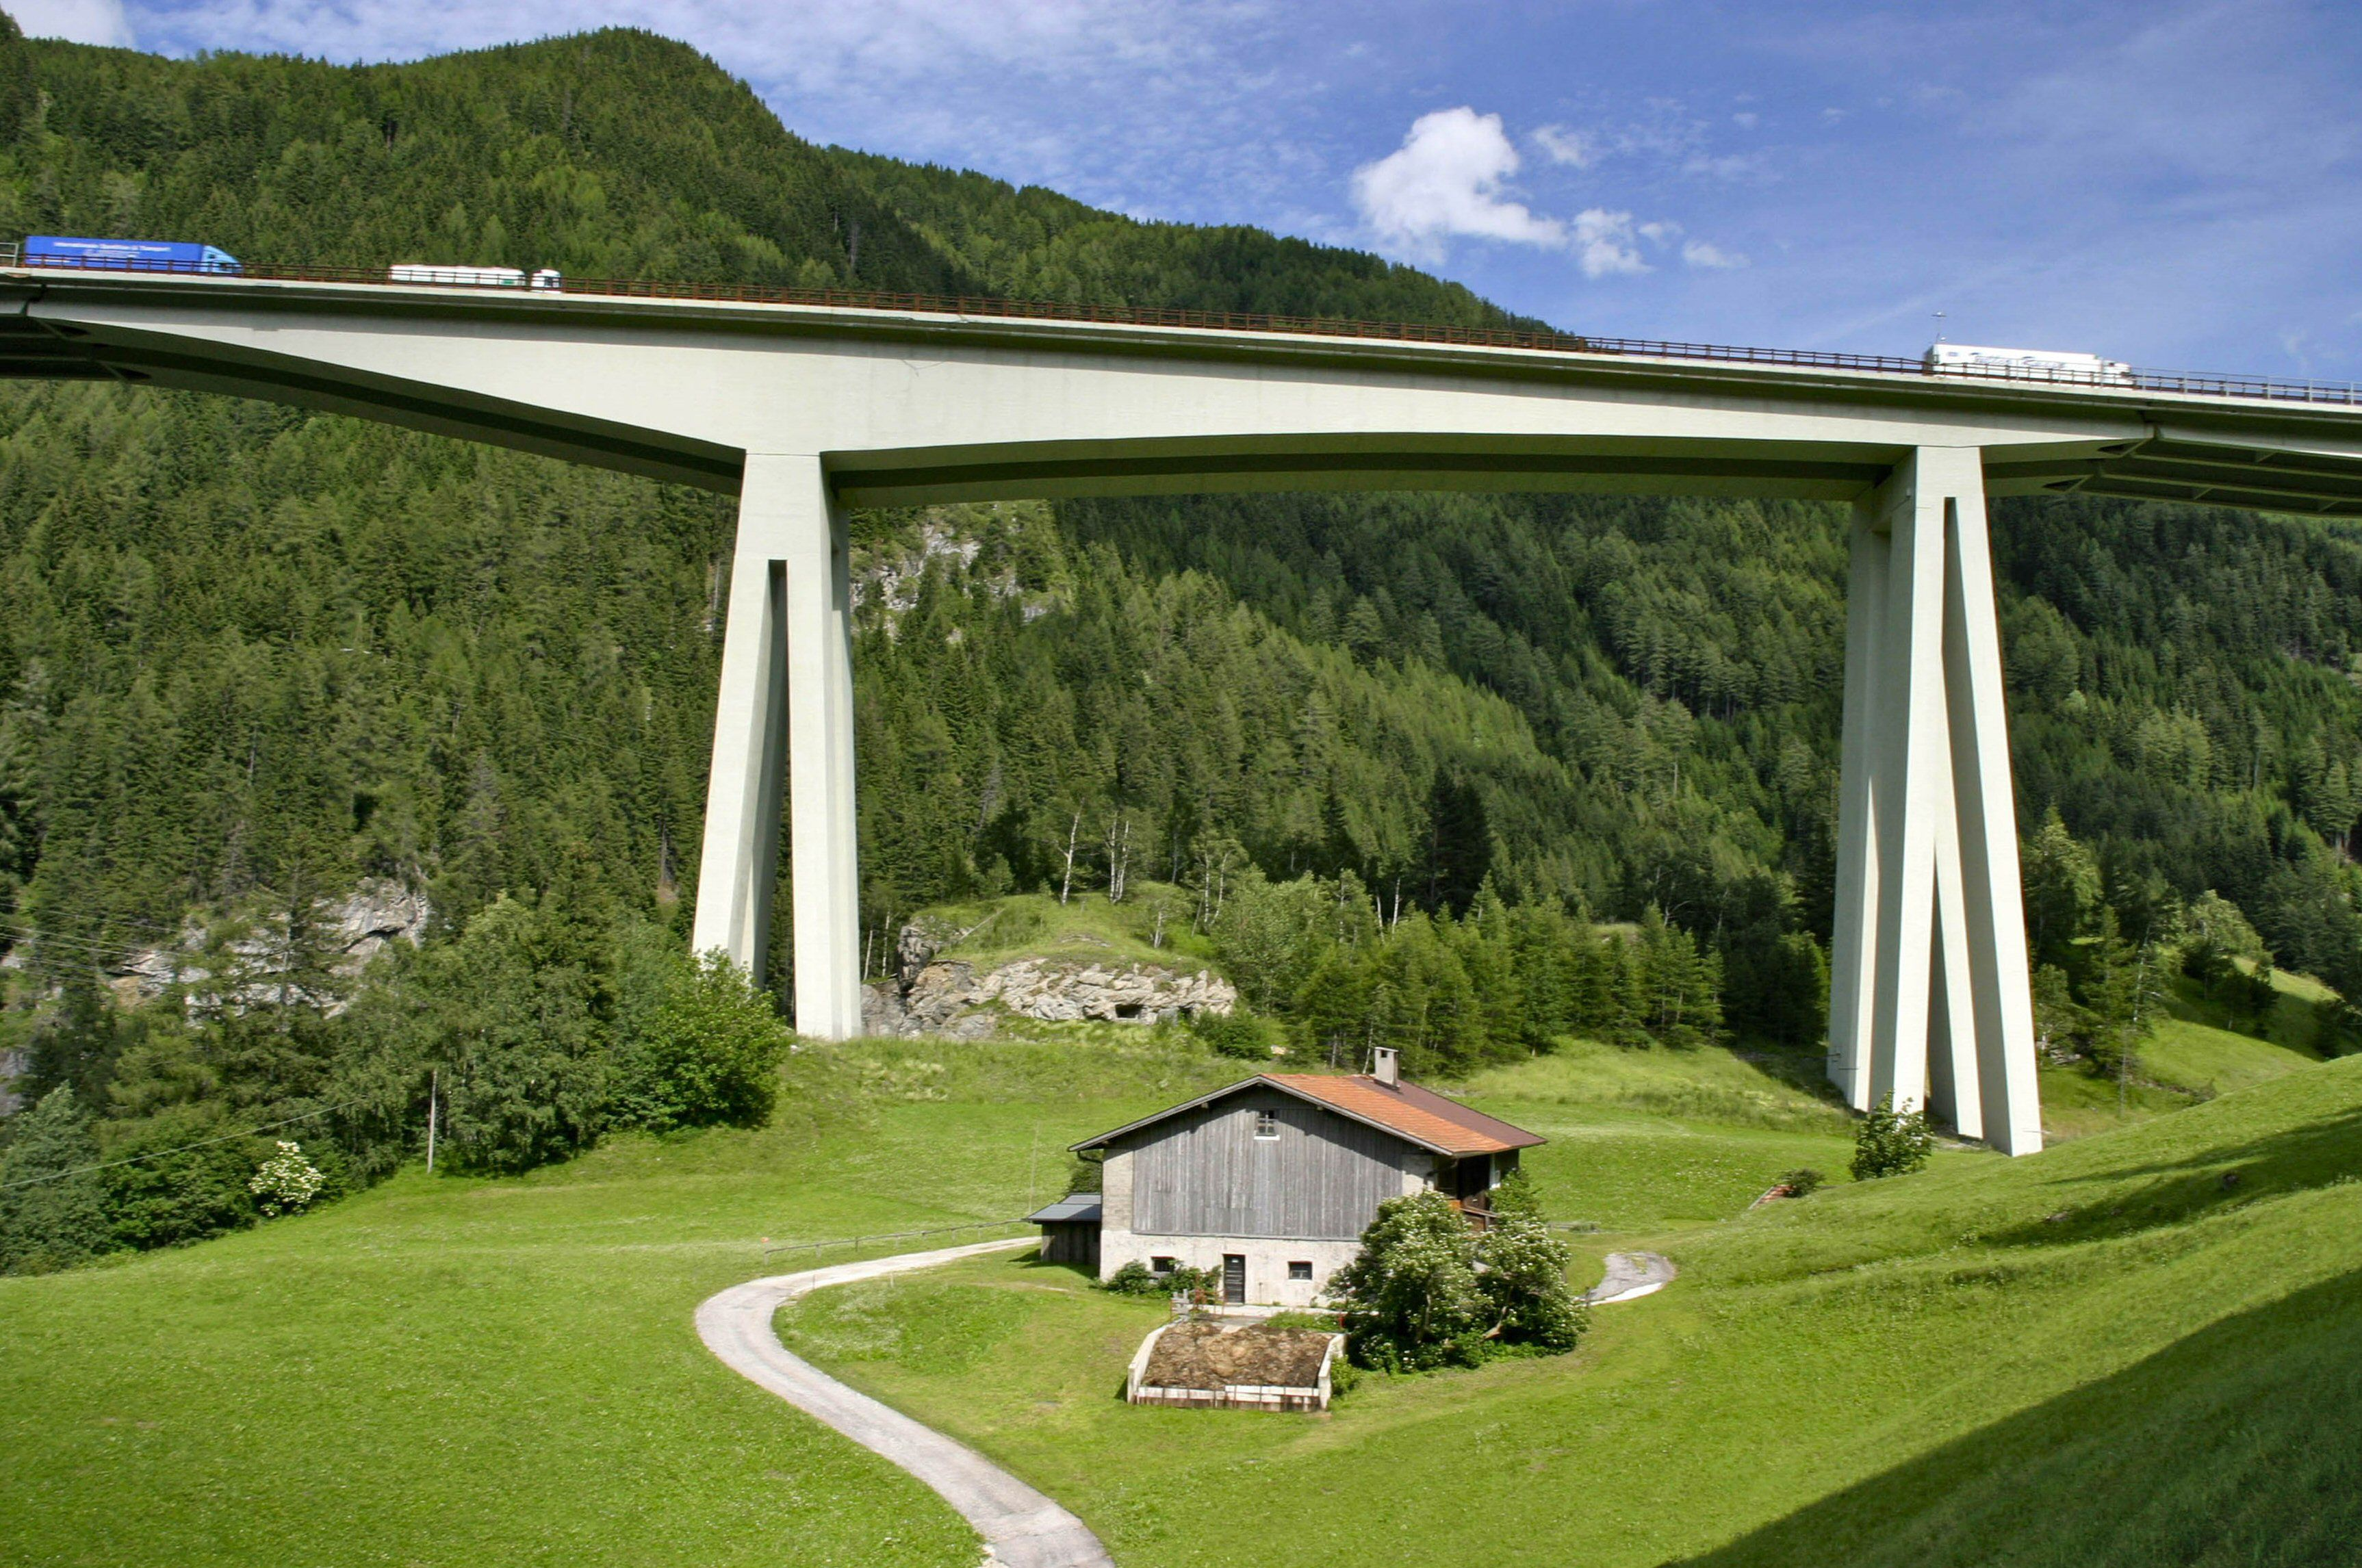 concrete bridge elevated above the mountains, valleys, and Alpine homes of Europe